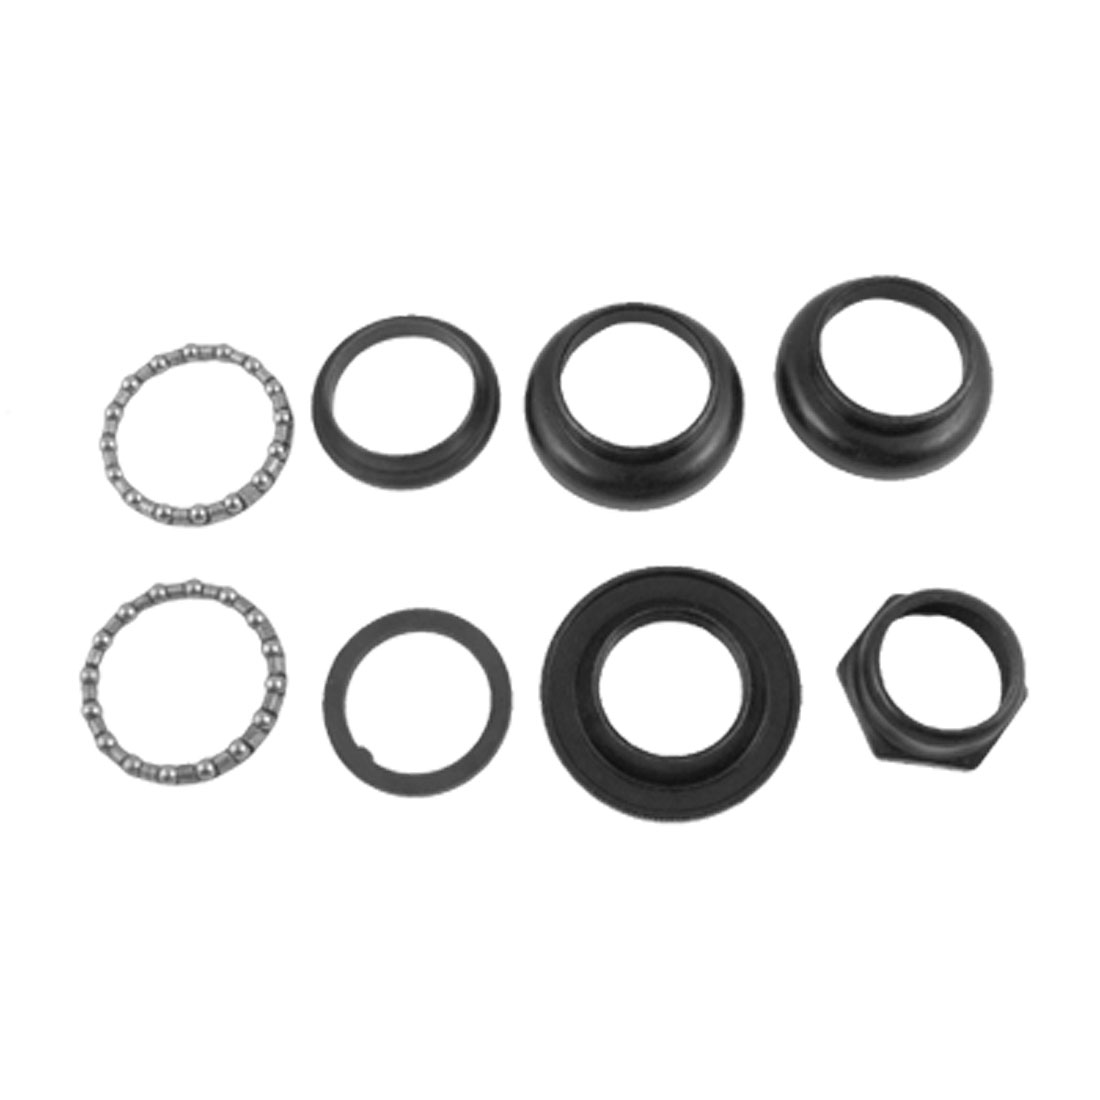 "Black Metal Bicycle Head Set 8 Parts 1"" Inner Diameter"